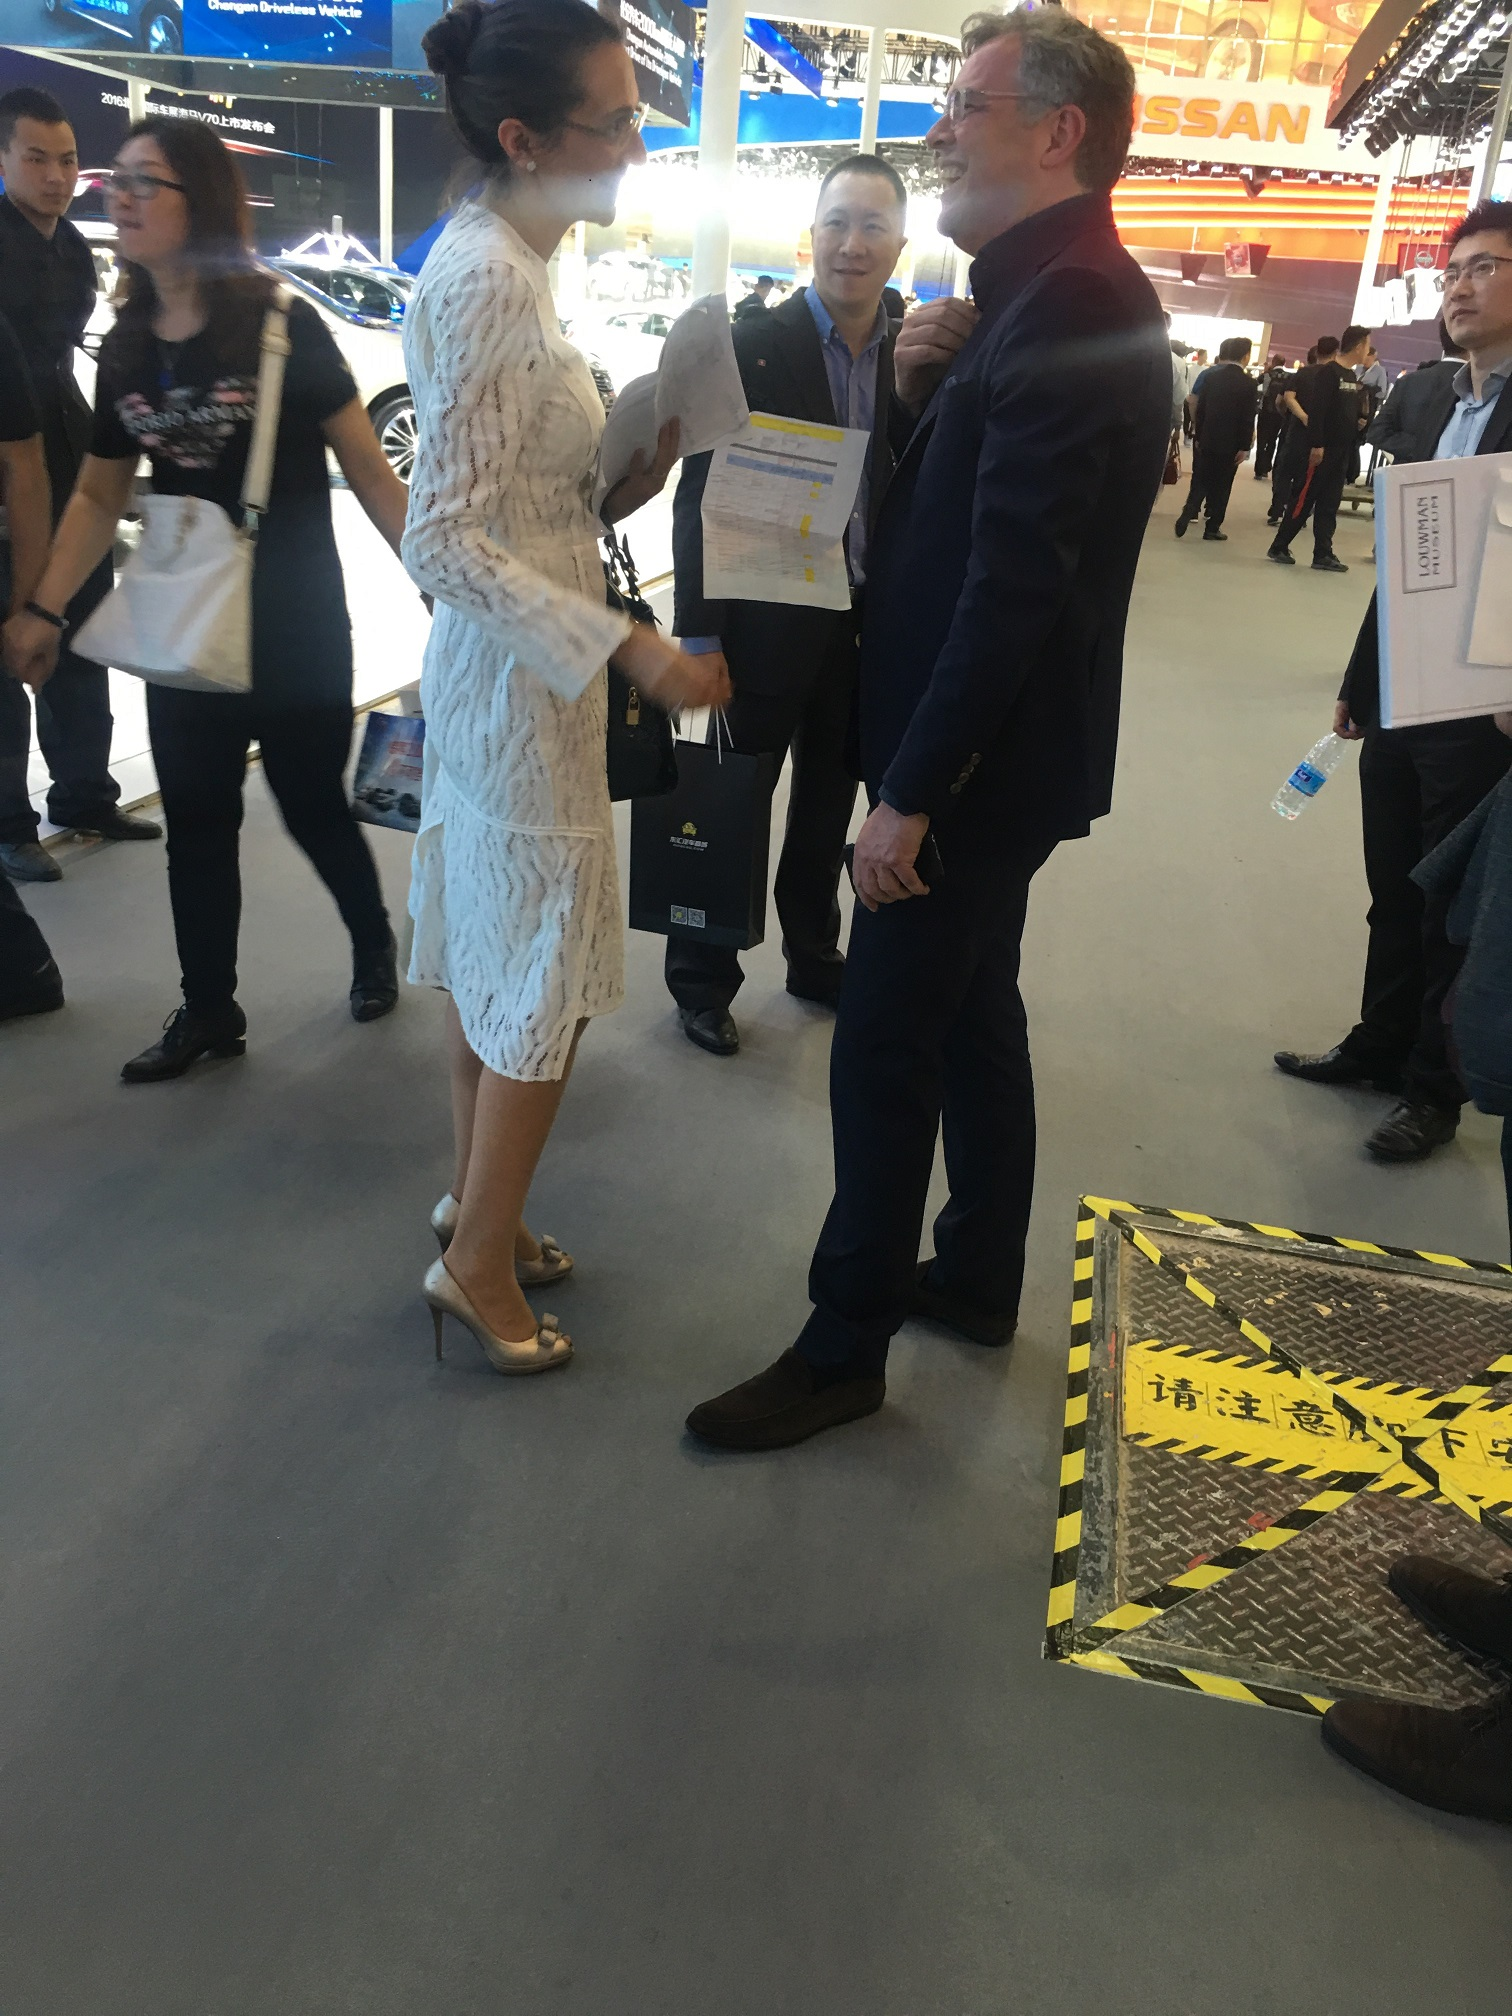 Vanessa Moriel exchanges a few words with a Volvo Global Executive during the press day at the Beijing Auto Show.